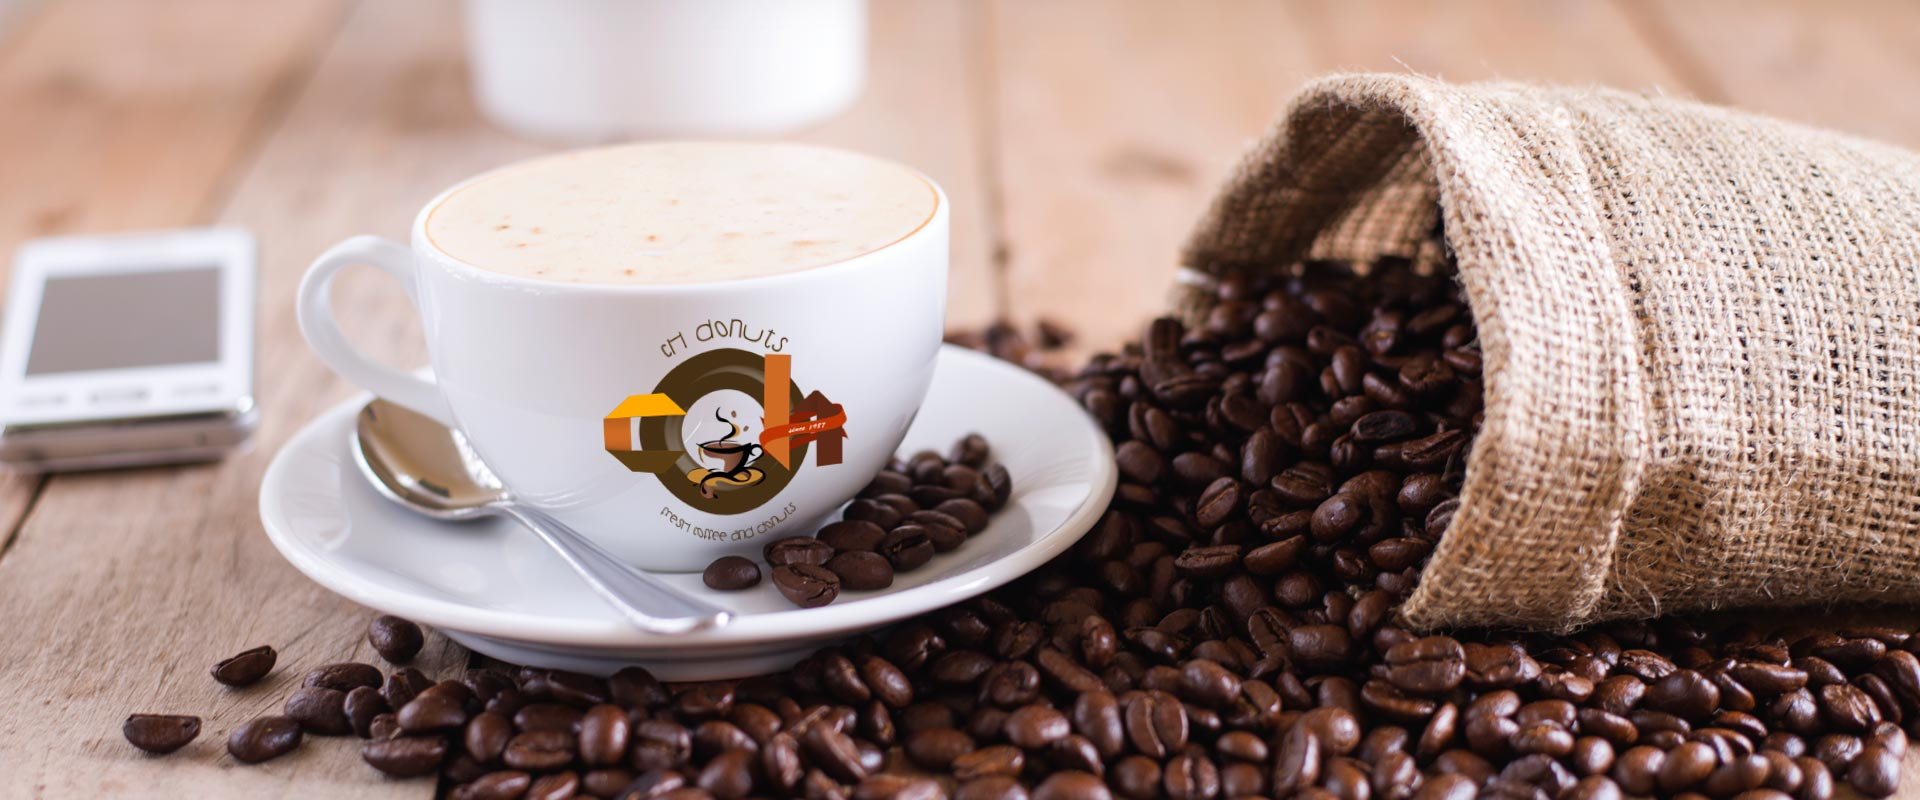 1920x800_coffee_with_logo